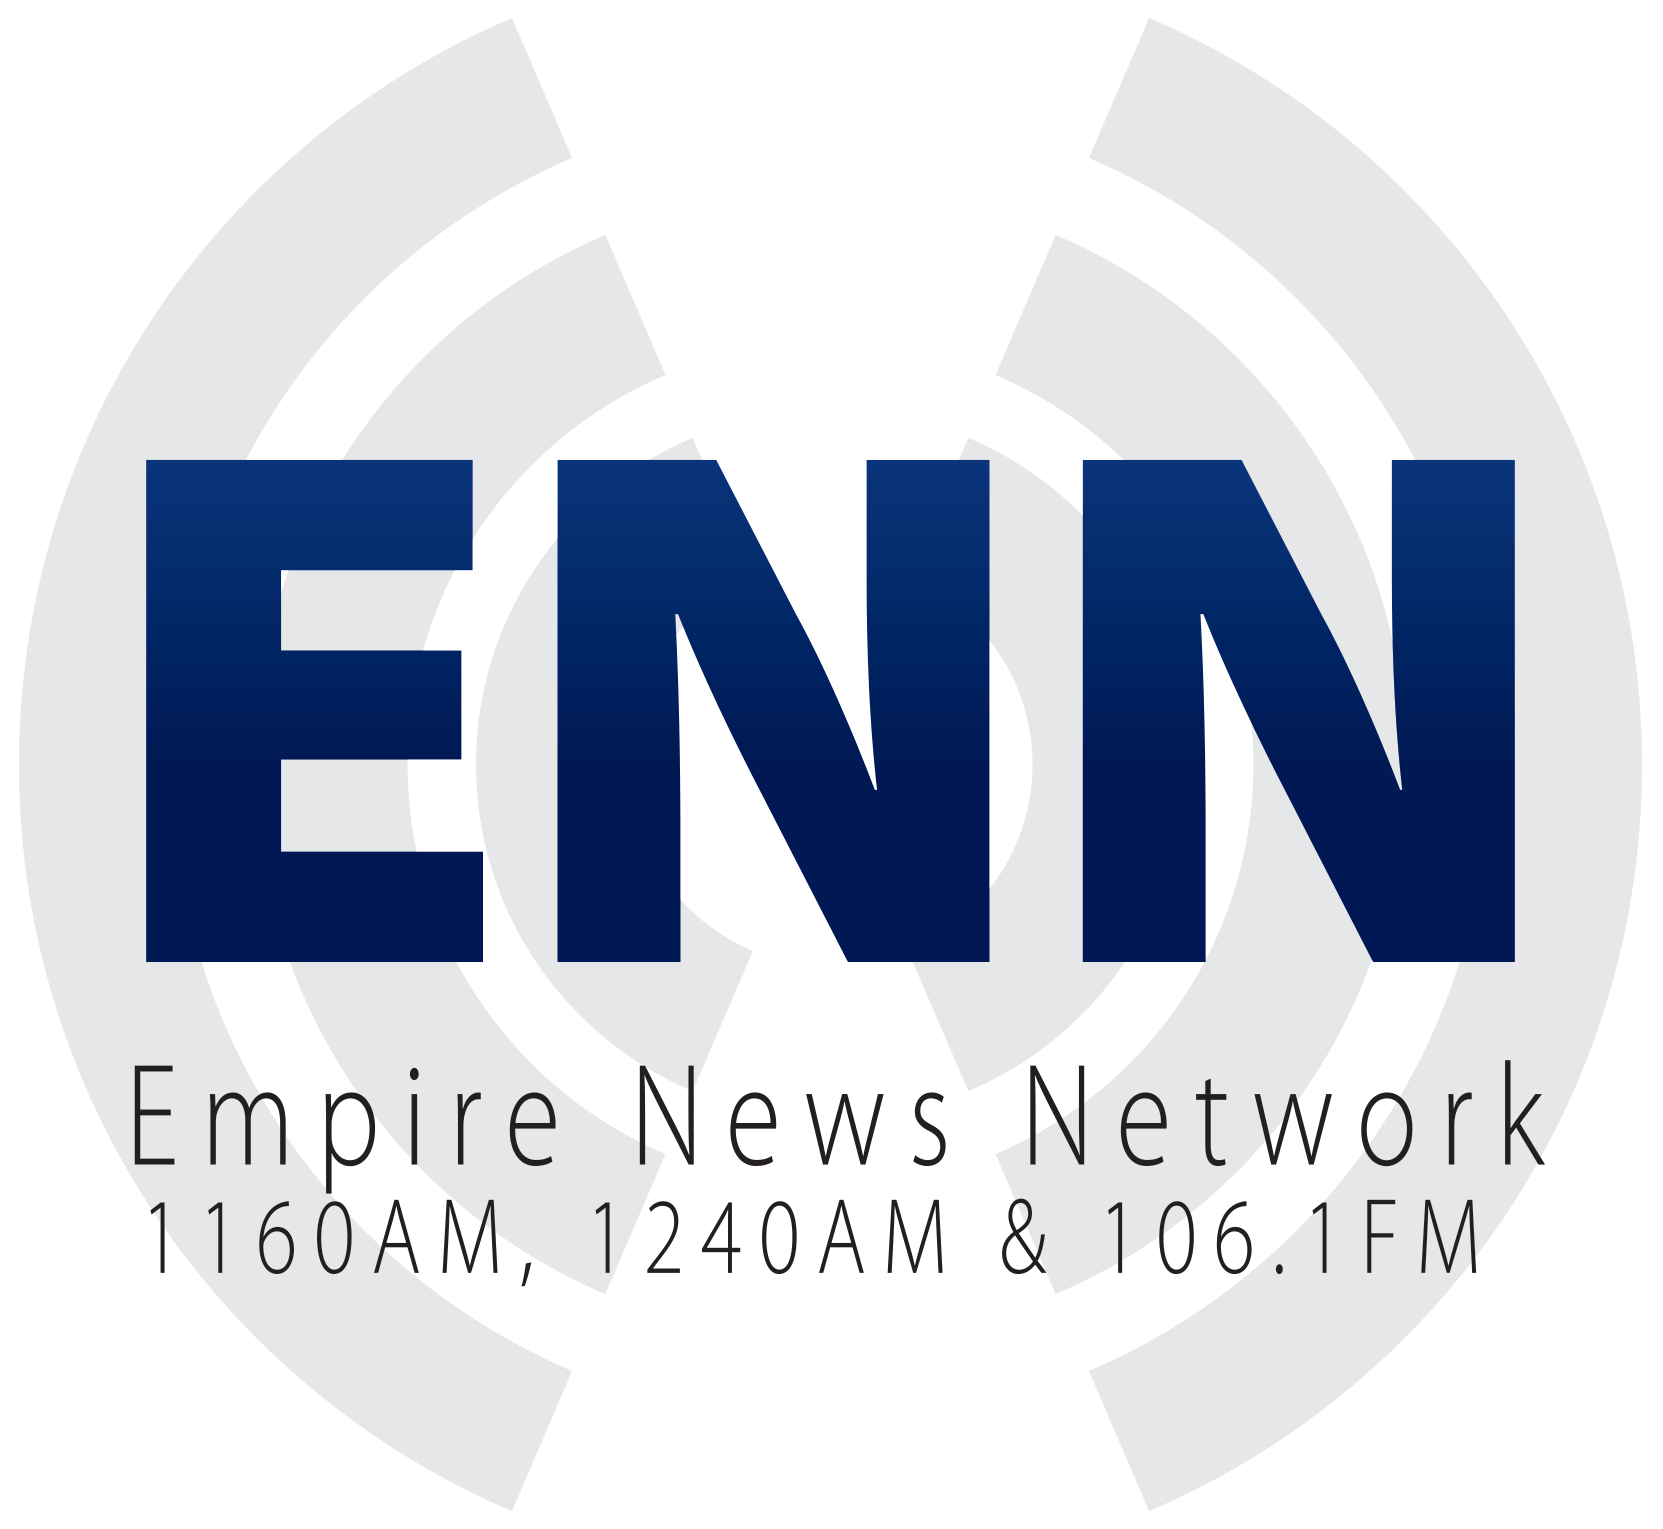 Empire News Network (1240AM WPTR)